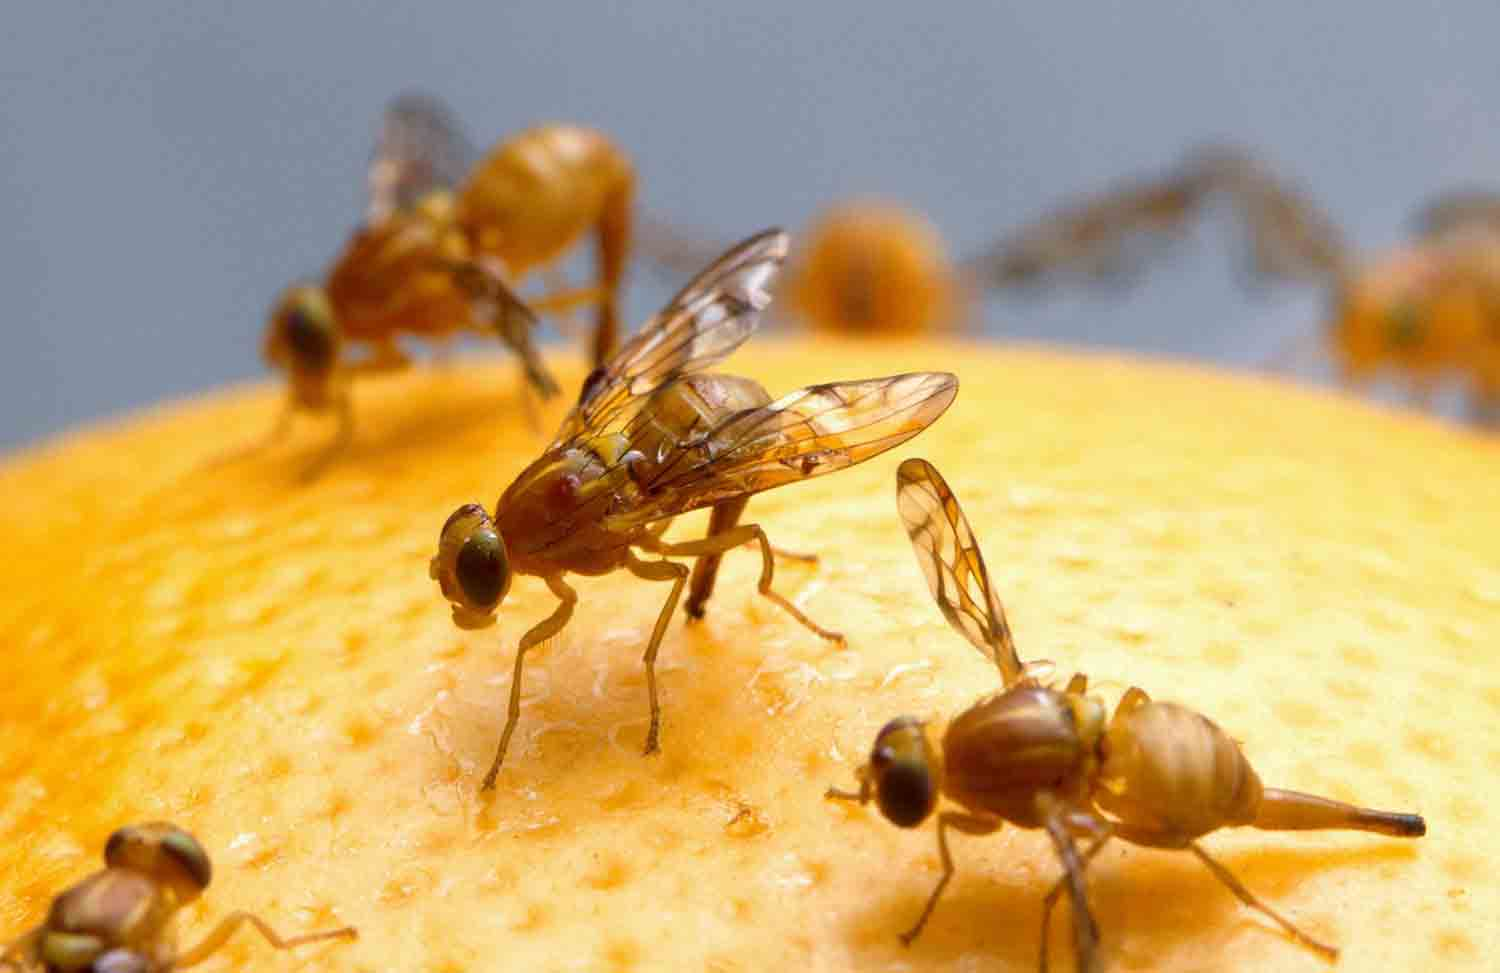 Female Mexican fruit fly insect